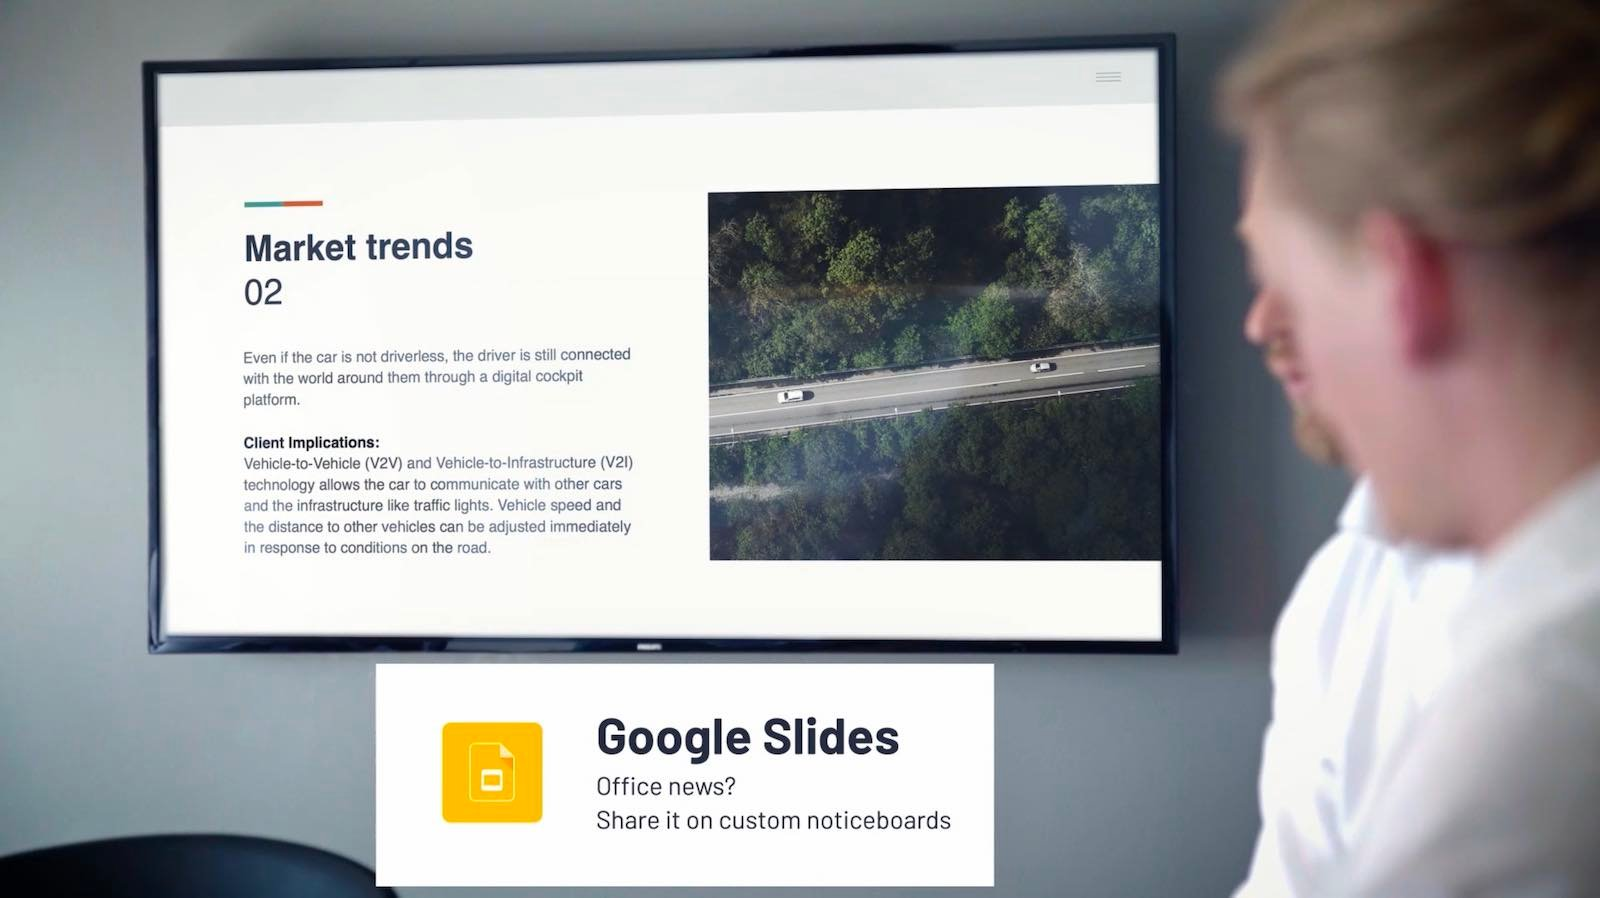 Google Slides on a TV's homescreen